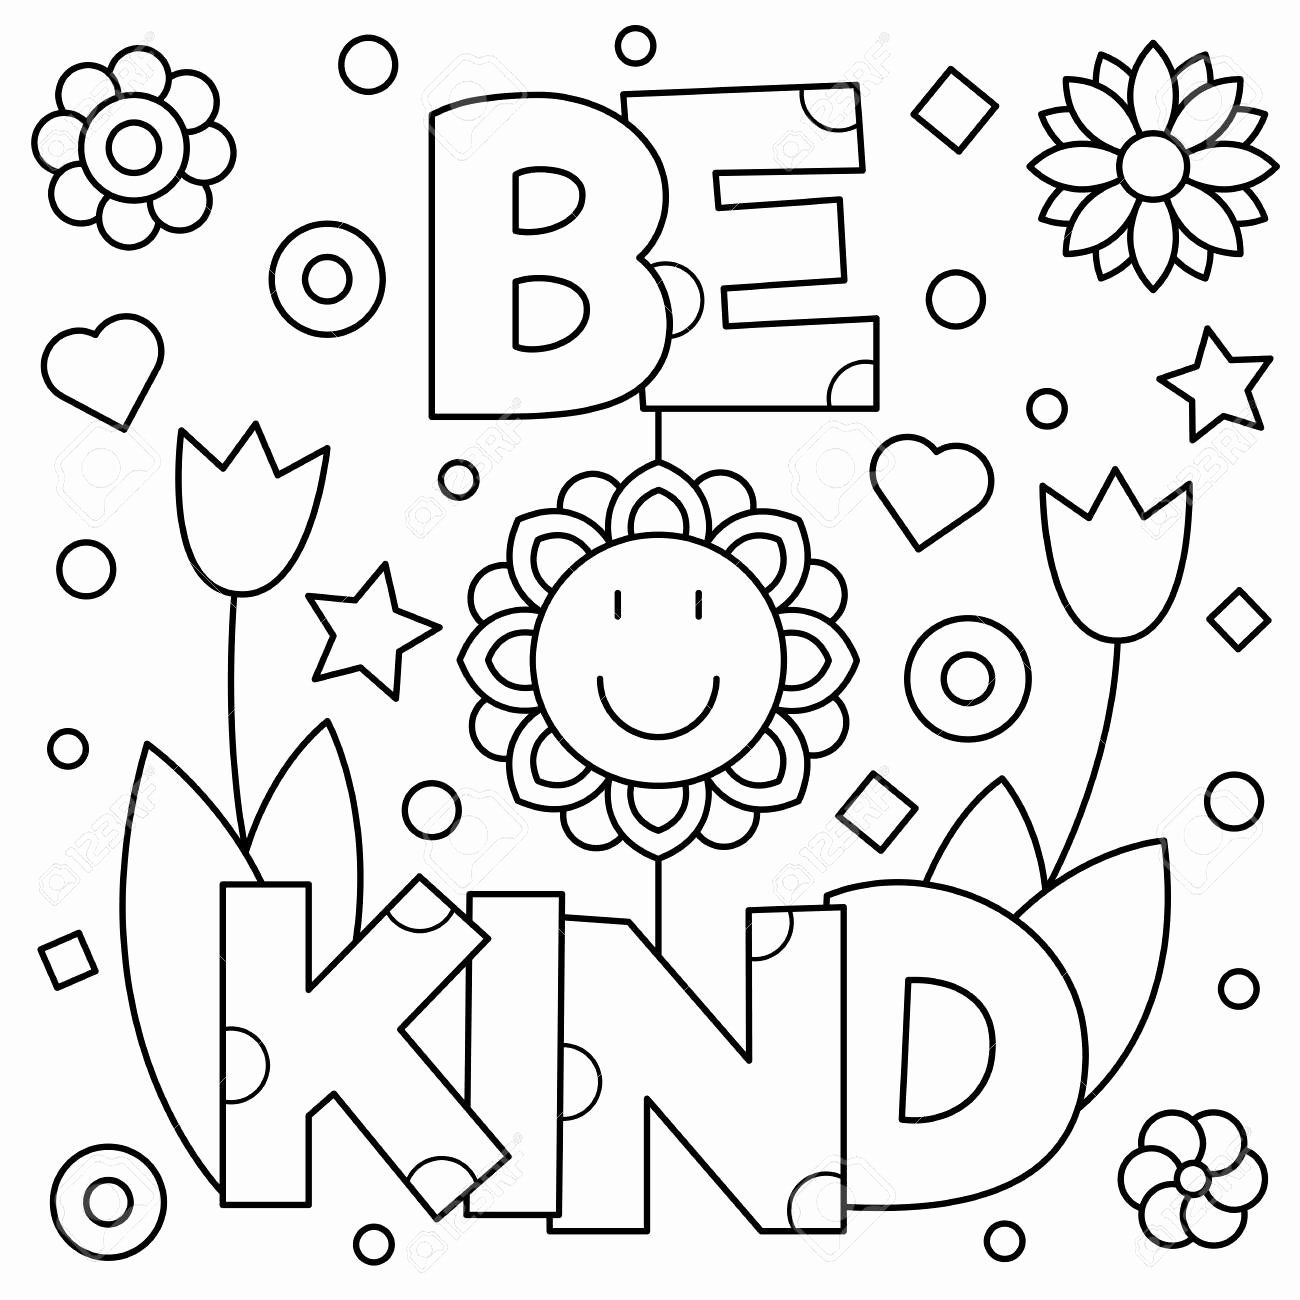 Be Kind Coloring Page Unique Be Kind Coloring Page Royalty Free